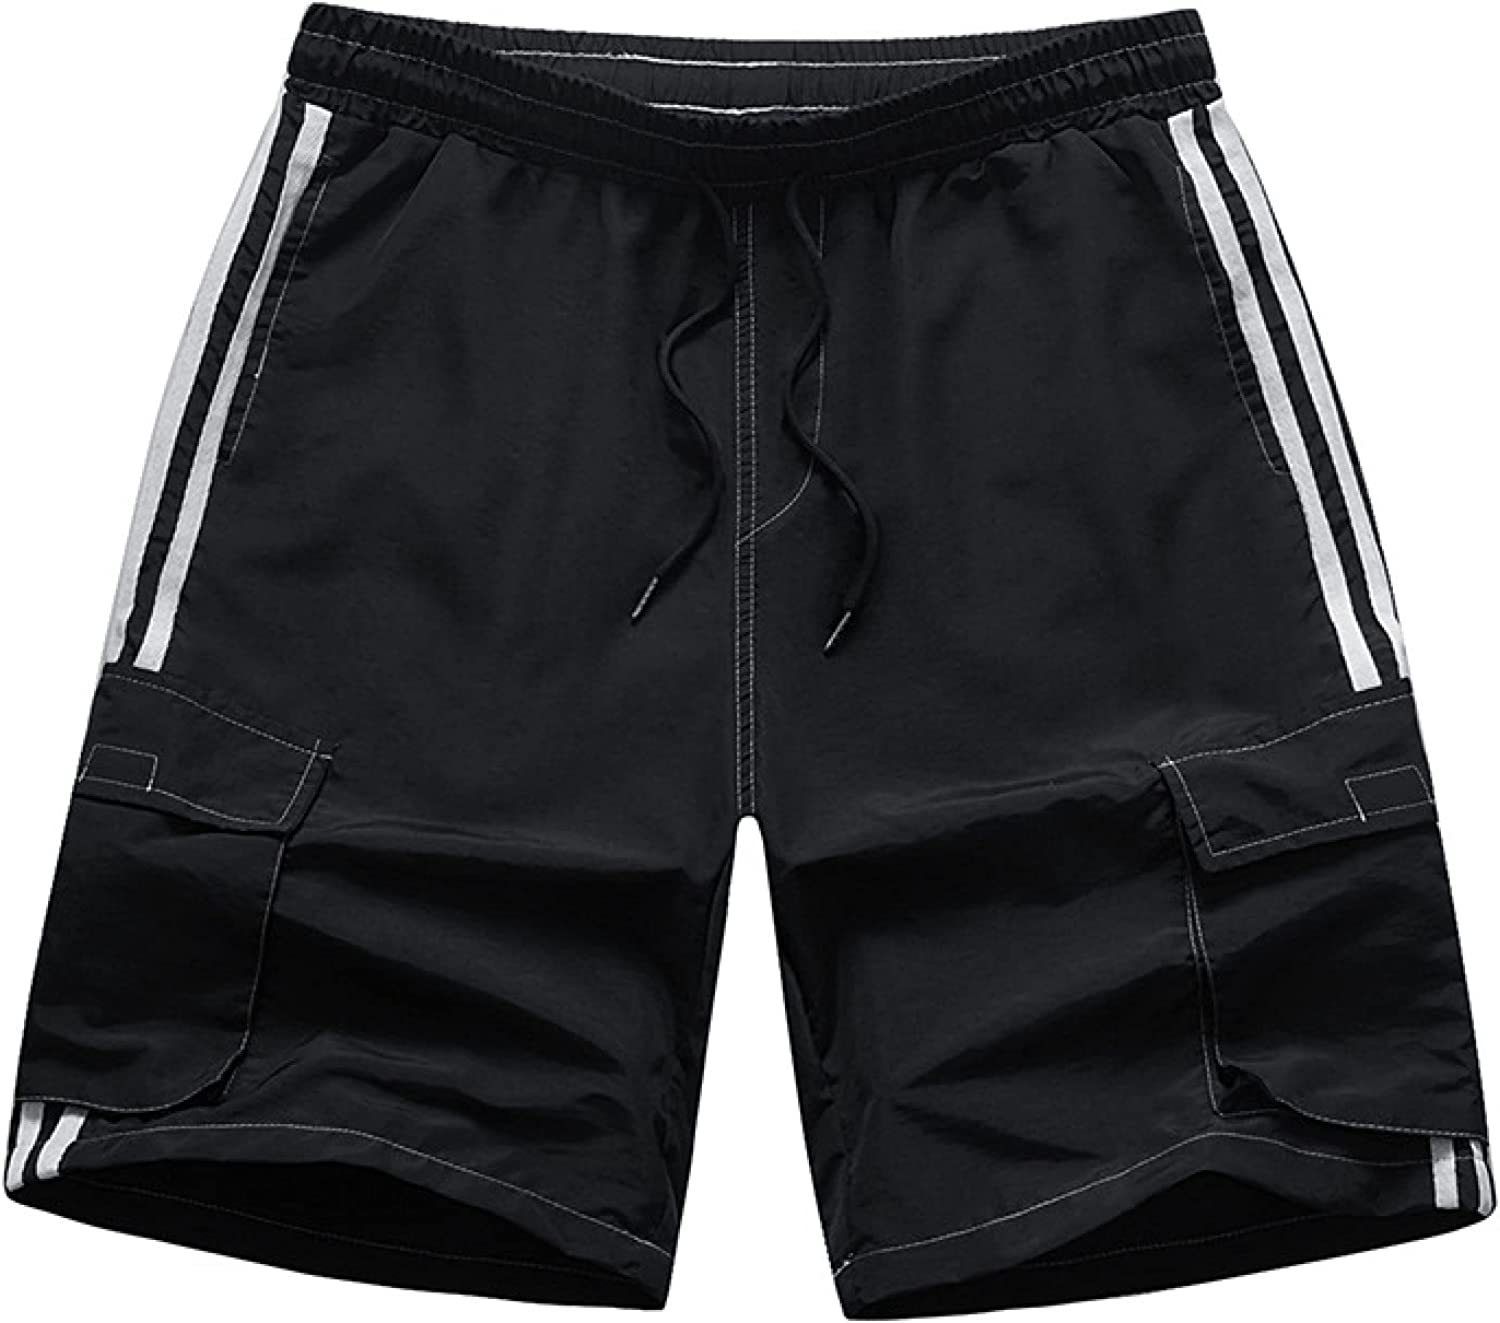 Wantess Men's Summer Shorts Loose Quick Dry Stitching Pockets Casual Comfortable